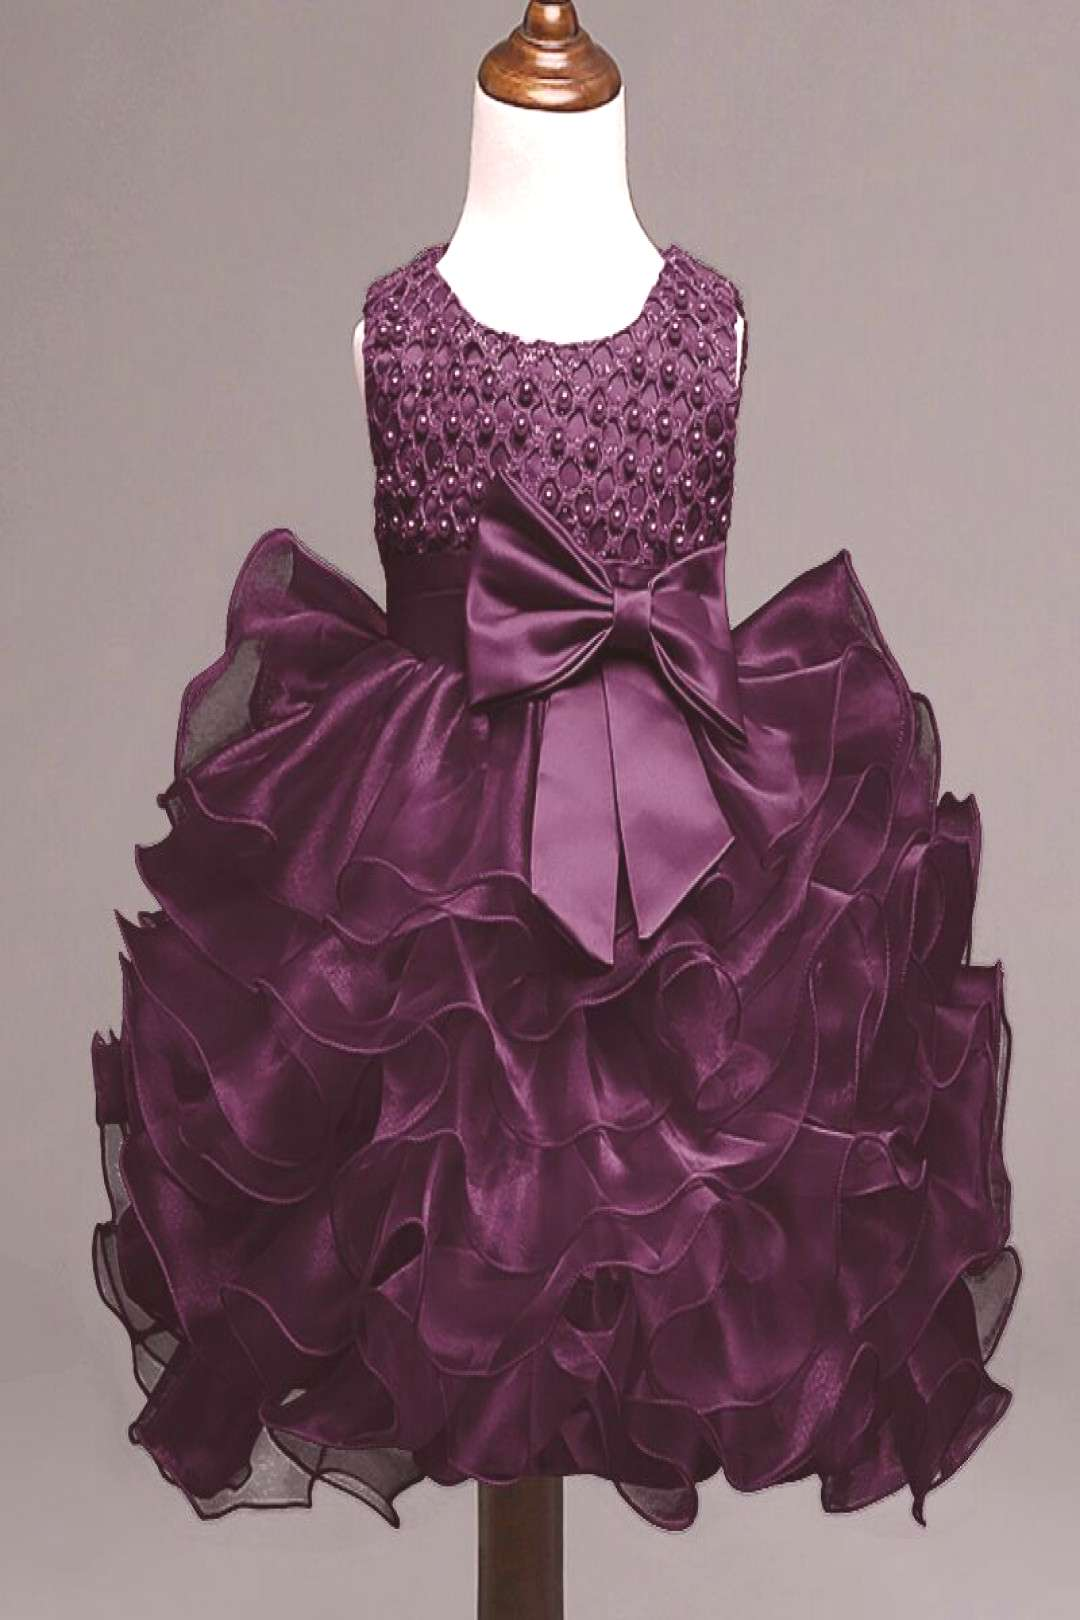 2017 Summer Newborn Formal Dress Purple Sleeveless Infant Baptism Ball Gown Dress Clothes For Toddl